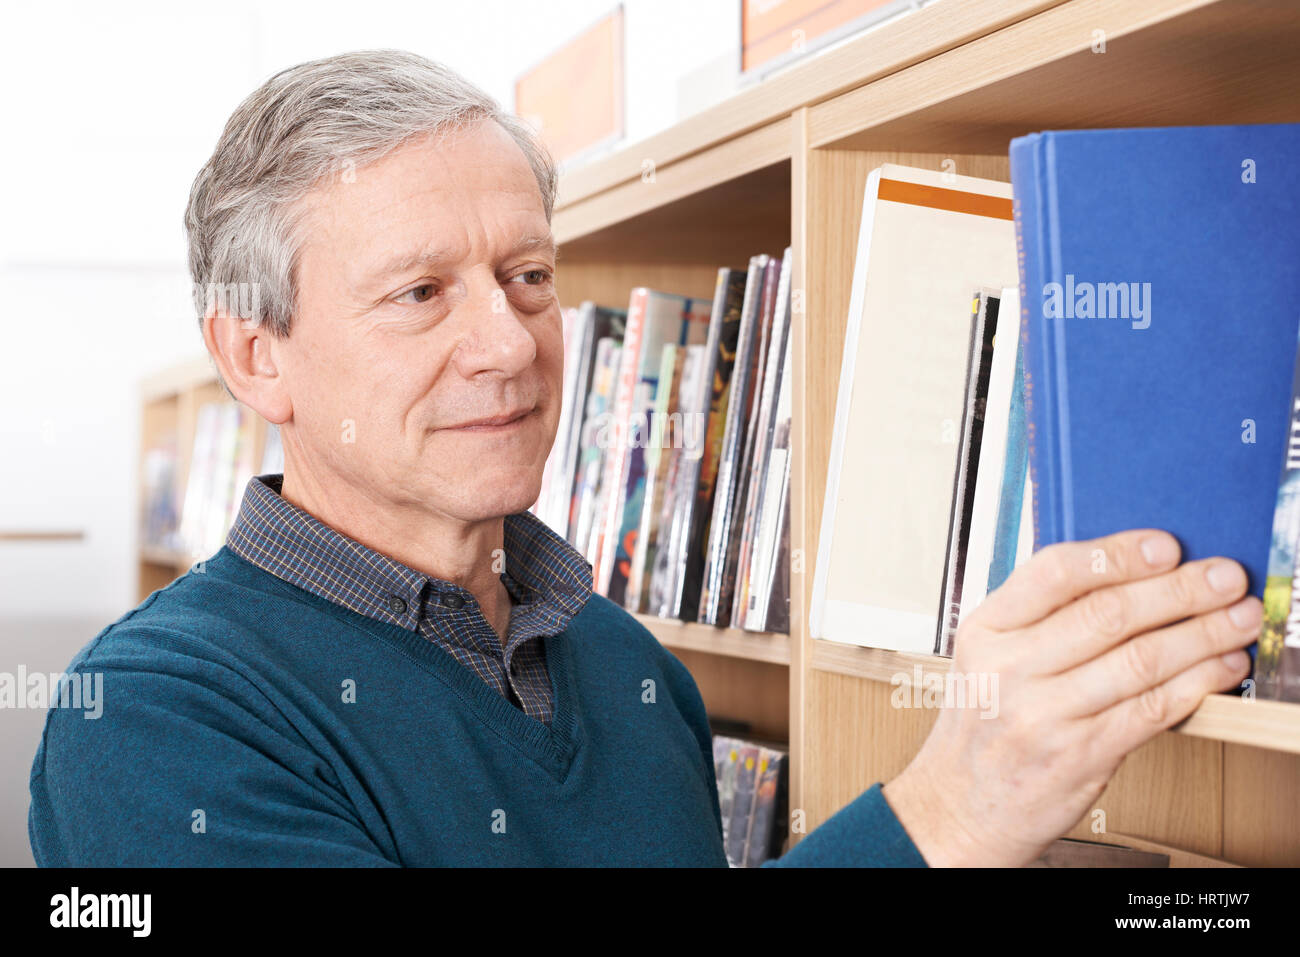 Mature Male Student Studying In Library - Stock Image